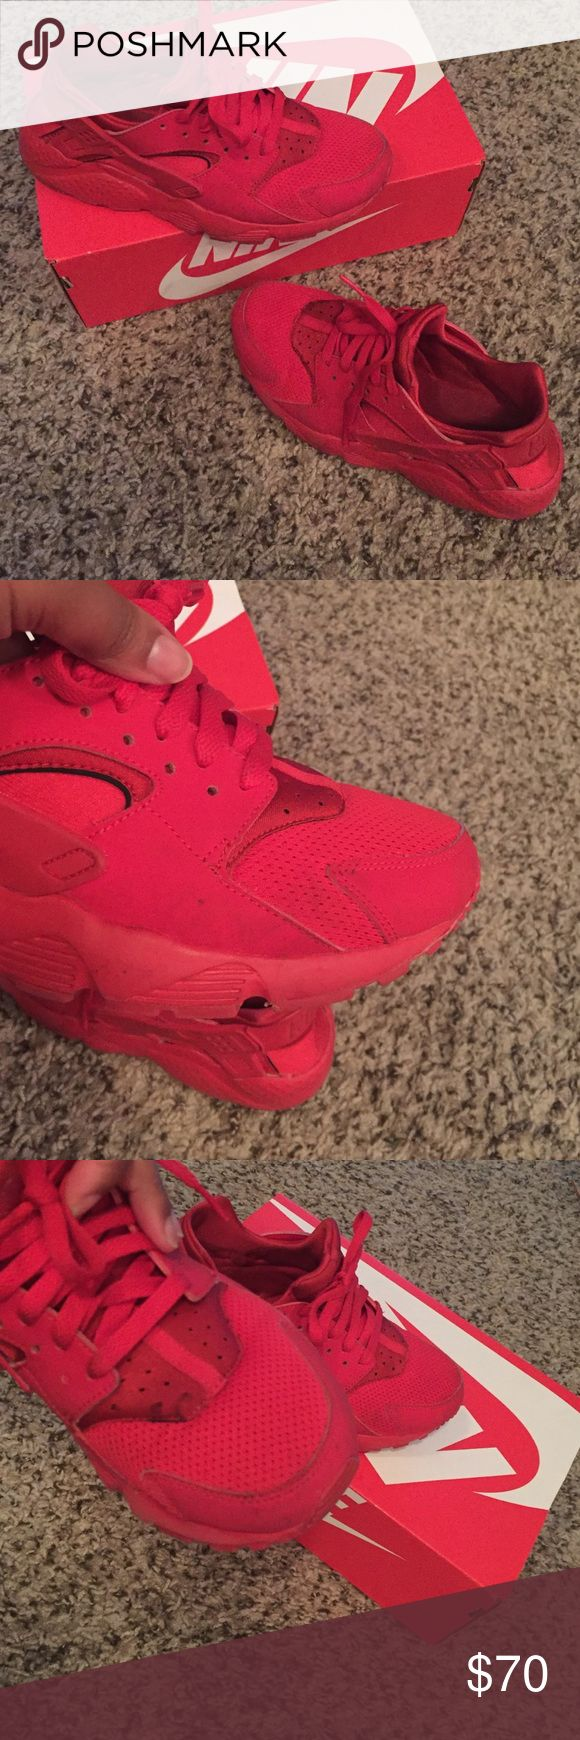 Nike Huaraches, Red - 6.5Y